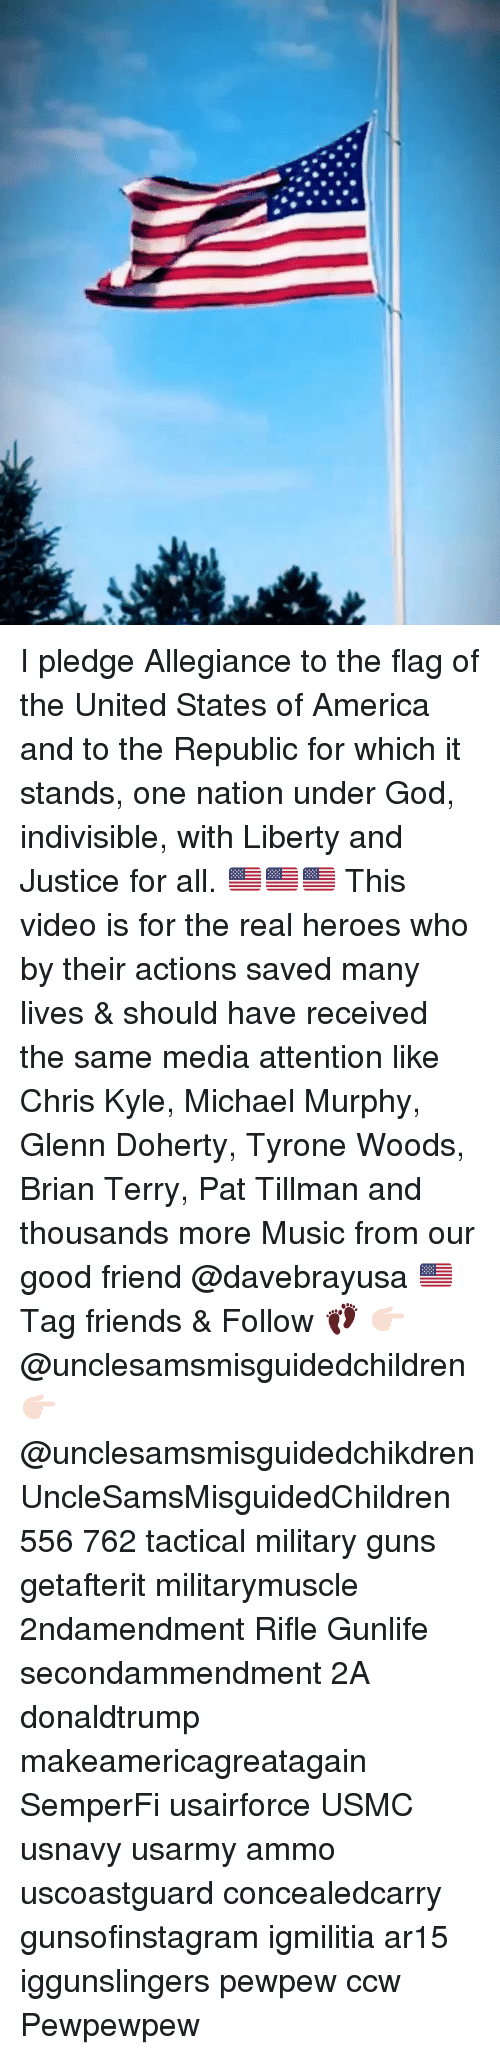 Glenn: I pledge Allegiance to the flag of the United States of America and to the Republic for which it stands, one nation under God, indivisible, with Liberty and Justice for all. 🇺🇸🇺🇸🇺🇸 This video is for the real heroes who by their actions saved many lives & should have received the same media attention like Chris Kyle, Michael Murphy, Glenn Doherty, Tyrone Woods, Brian Terry, Pat Tillman and thousands more Music from our good friend @davebrayusa 🇺🇸 Tag friends & Follow 👣 👉🏻 @unclesamsmisguidedchildren 👉🏻 @unclesamsmisguidedchikdren UncleSamsMisguidedChildren 556 762 tactical military guns getafterit militarymuscle 2ndamendment Rifle Gunlife secondammendment 2A donaldtrump makeamericagreatagain SemperFi usairforce USMC usnavy usarmy ammo uscoastguard concealedcarry gunsofinstagram igmilitia ar15 iggunslingers pewpew ccw Pewpewpew